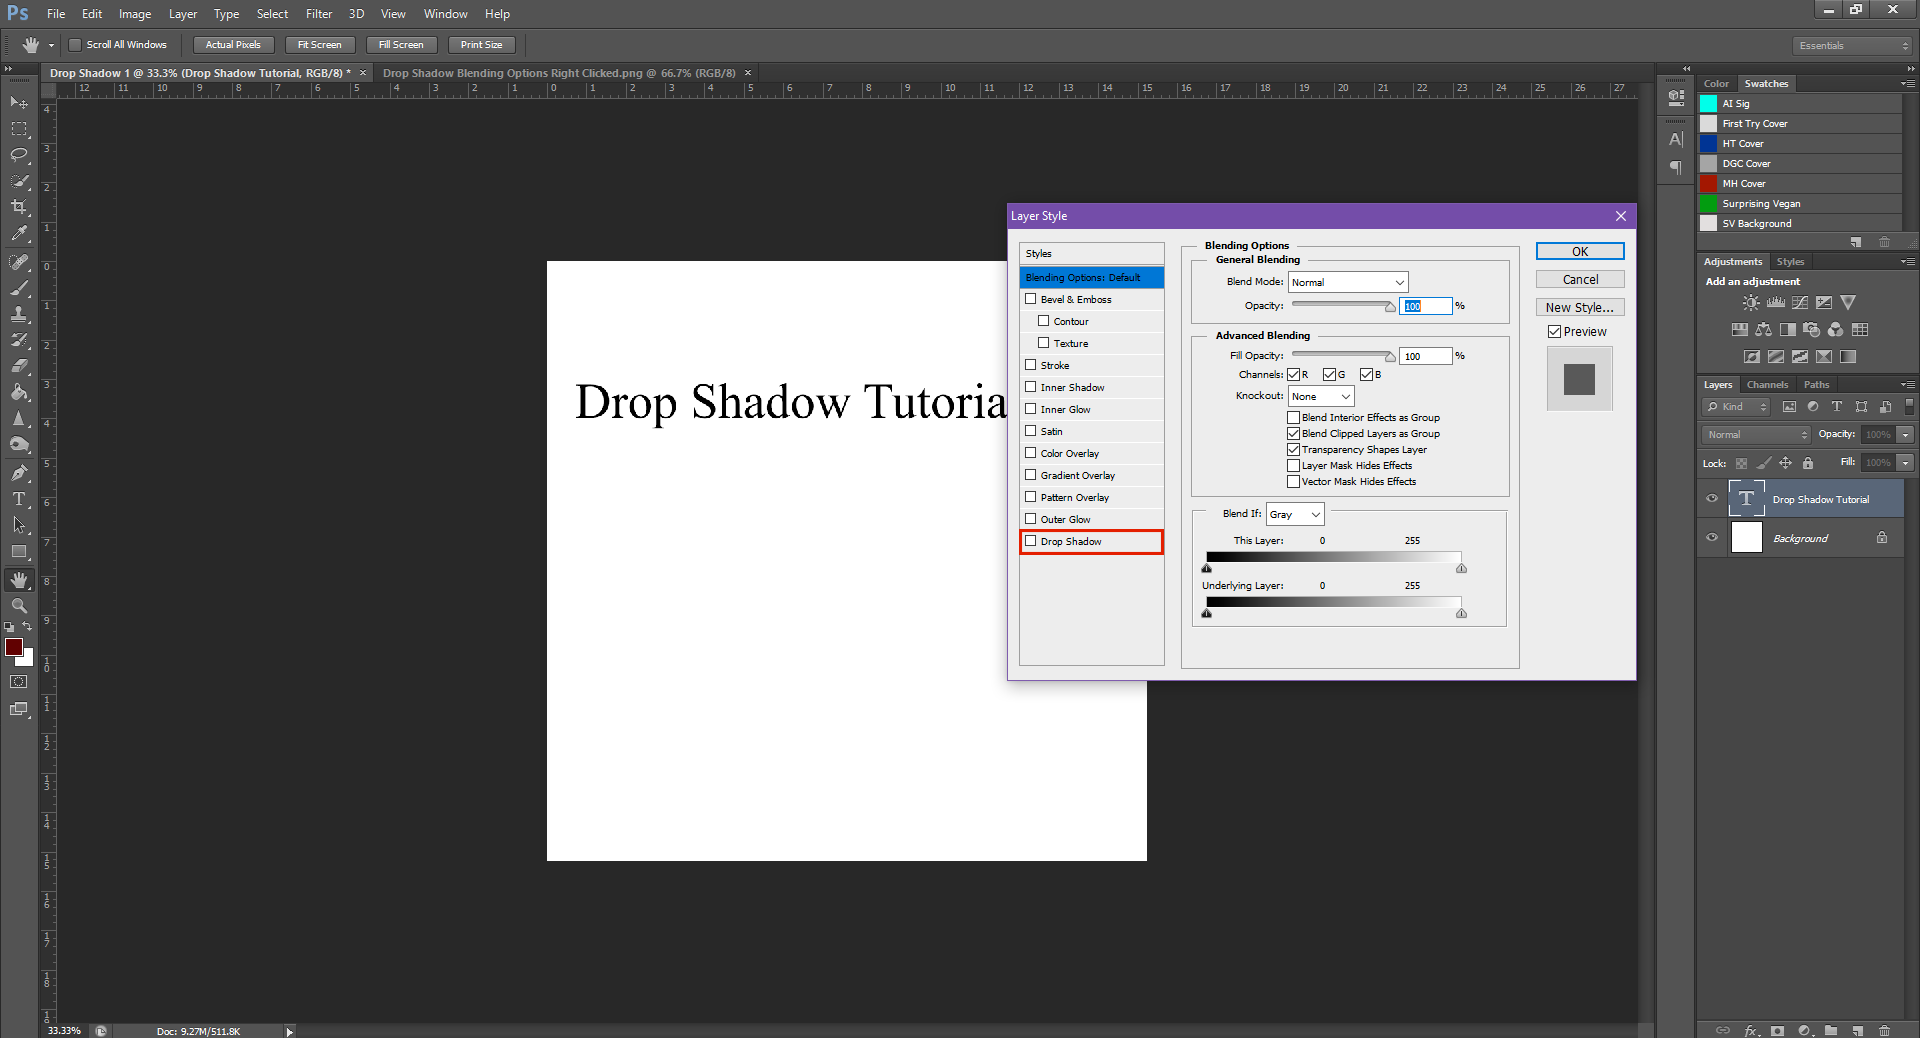 AterImber.com - Writing - Writing Tips - PHSH Tutorial - Drop Shadow - Blending Options Dialogue Box